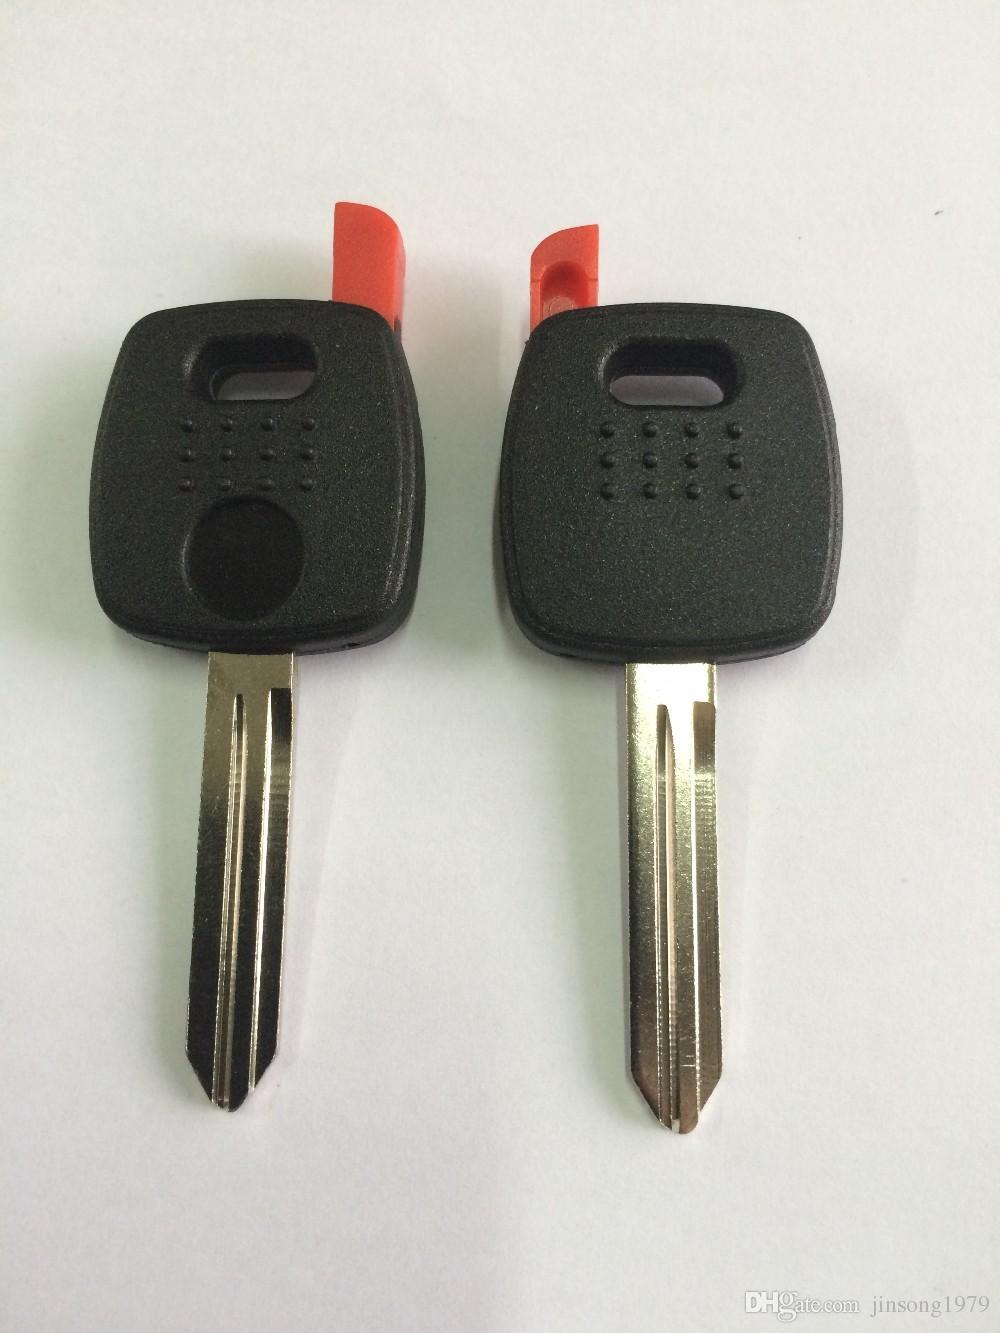 Kl43 transponder key shell for nissan key fob cover uncut blade replacement key shell for nissan no logo car key battery replacement car key change from